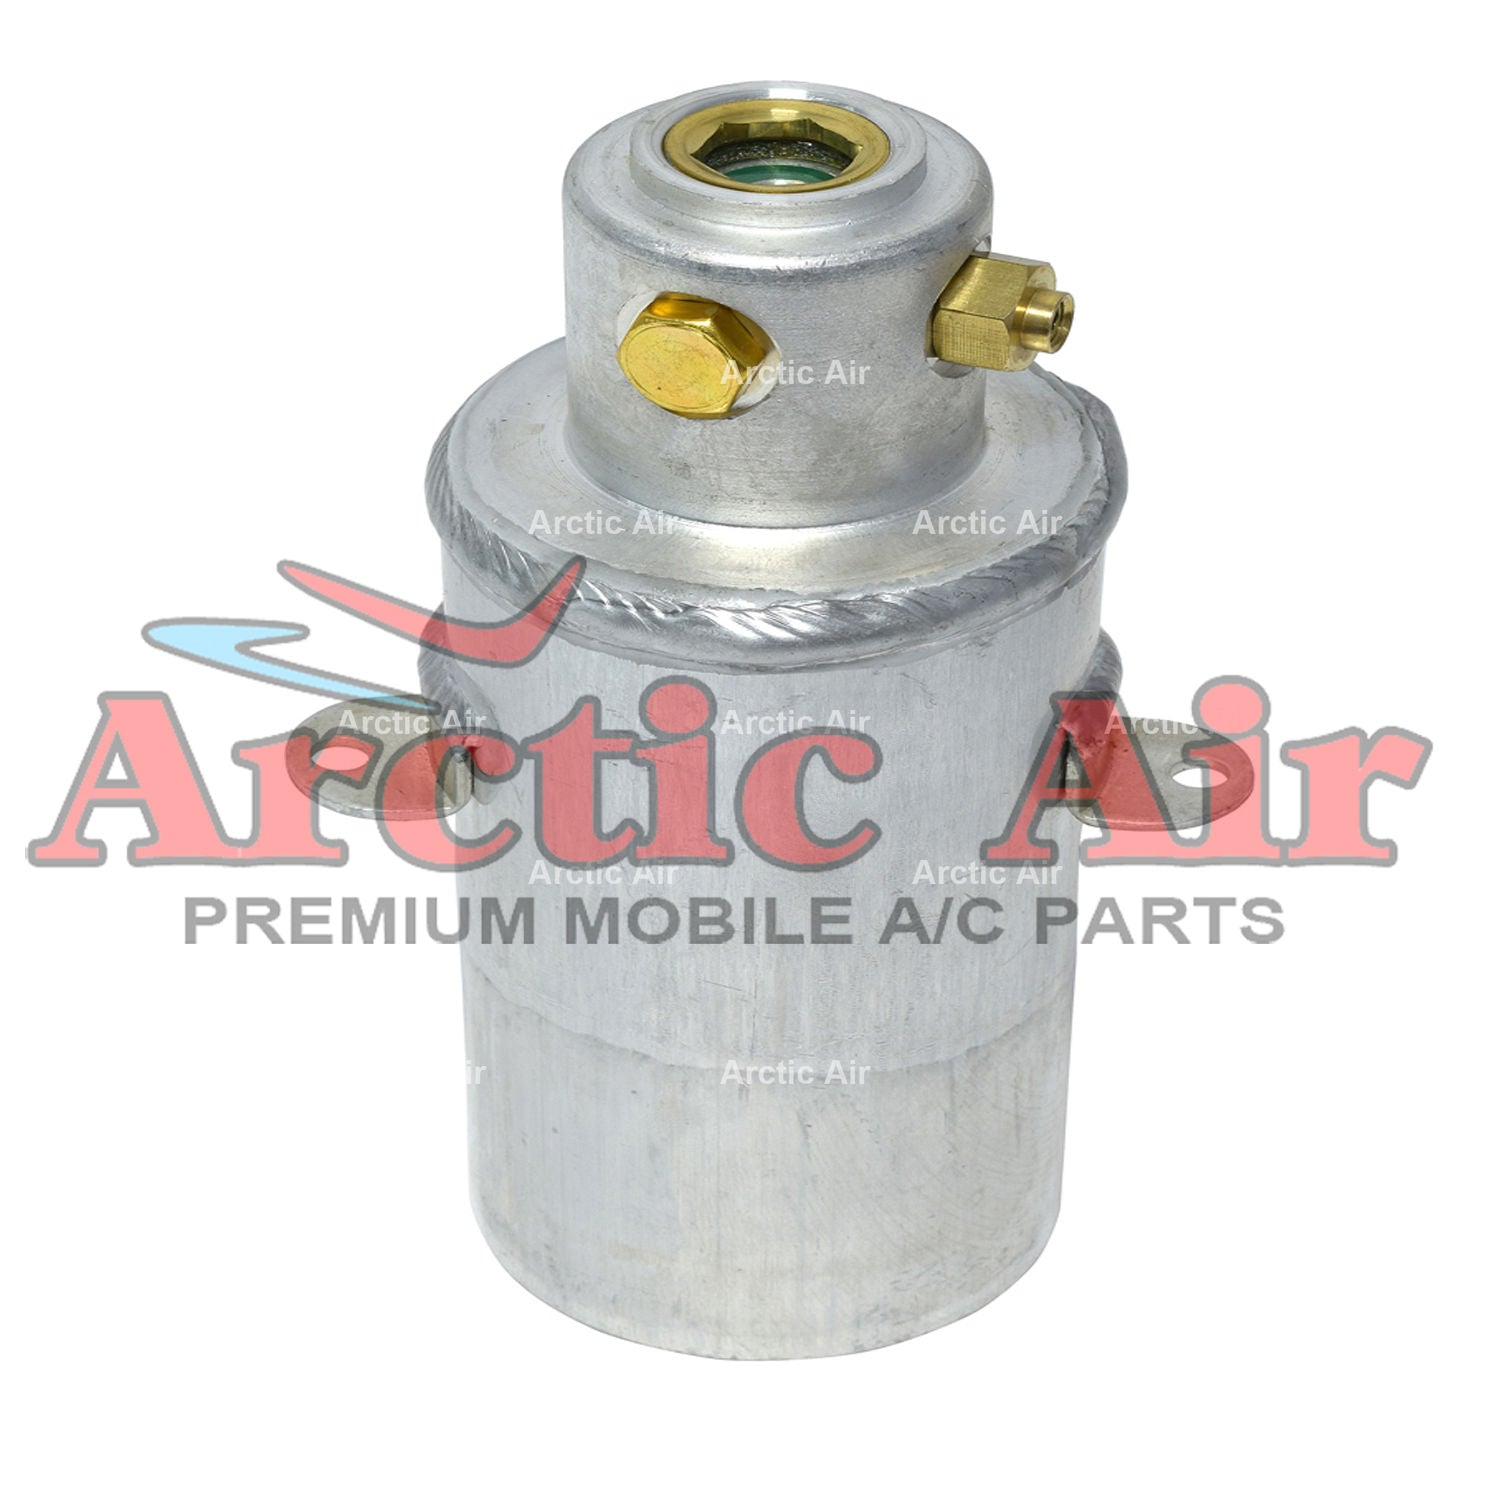 A//C Drier for 92-99 Mercedes-Benz 300SD Diesel CL500 CL600 S420 S500 S600 33376